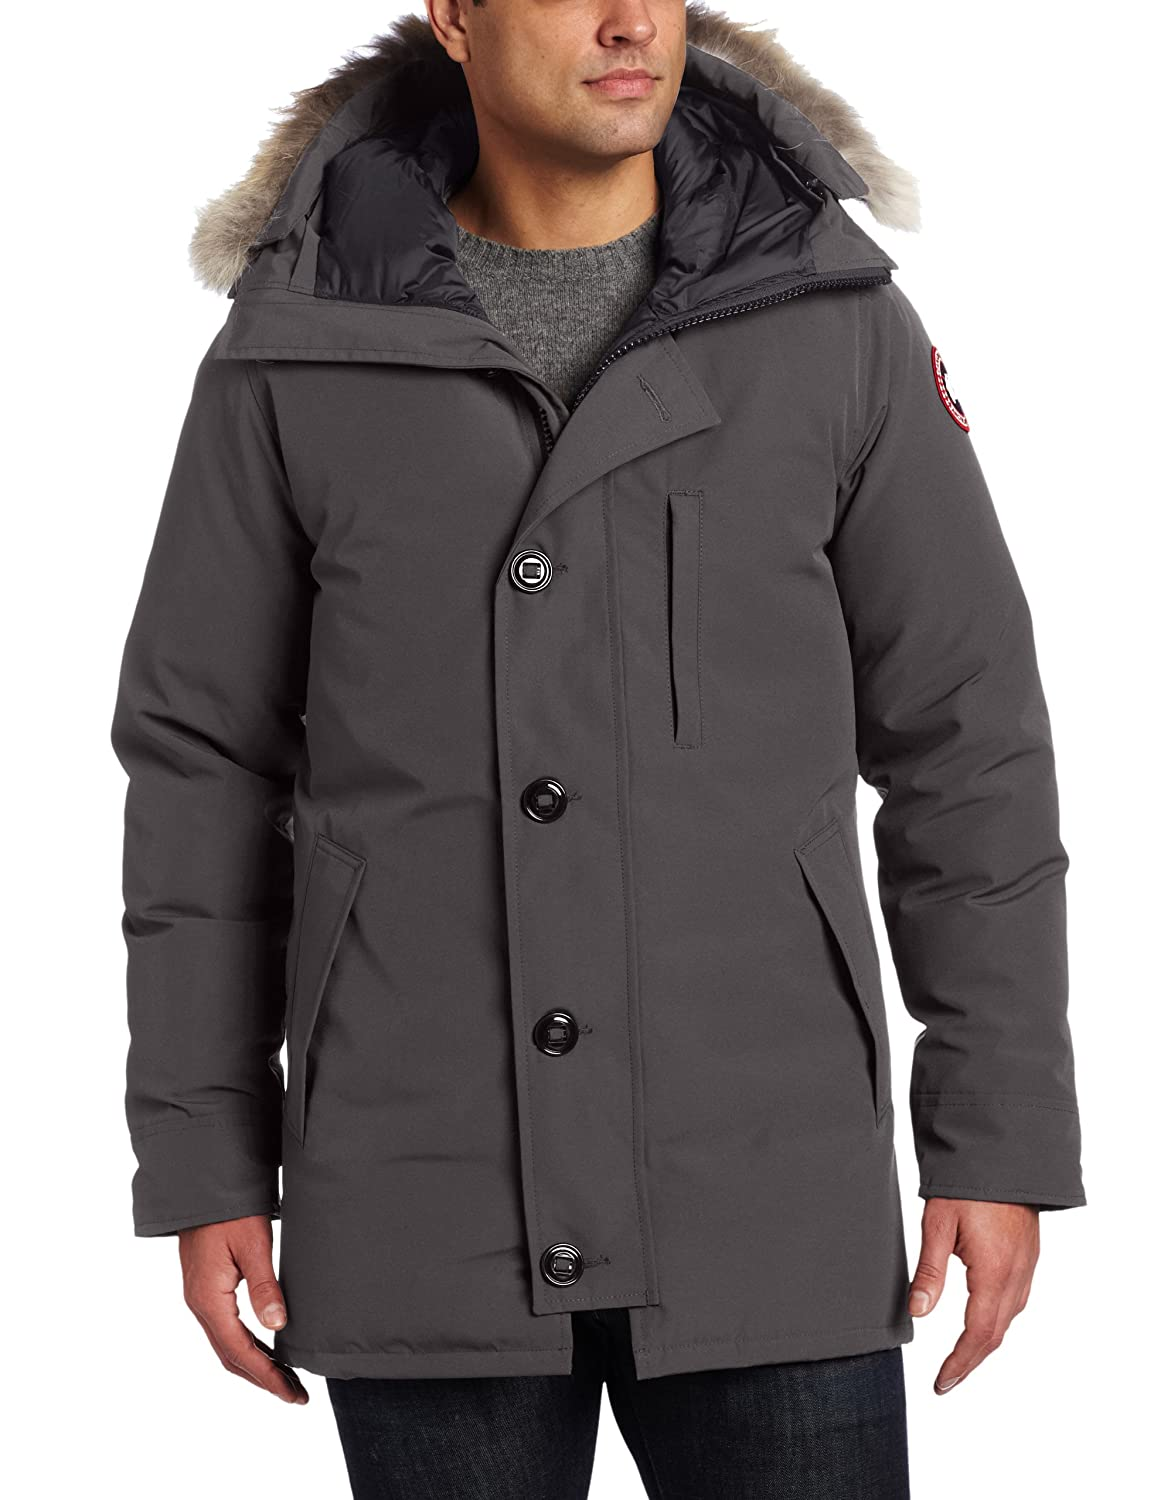 Canada Goose chateau parka outlet shop - Amazon.com: Canada Goose Men's The Chateau Jacket: Sports & Outdoors